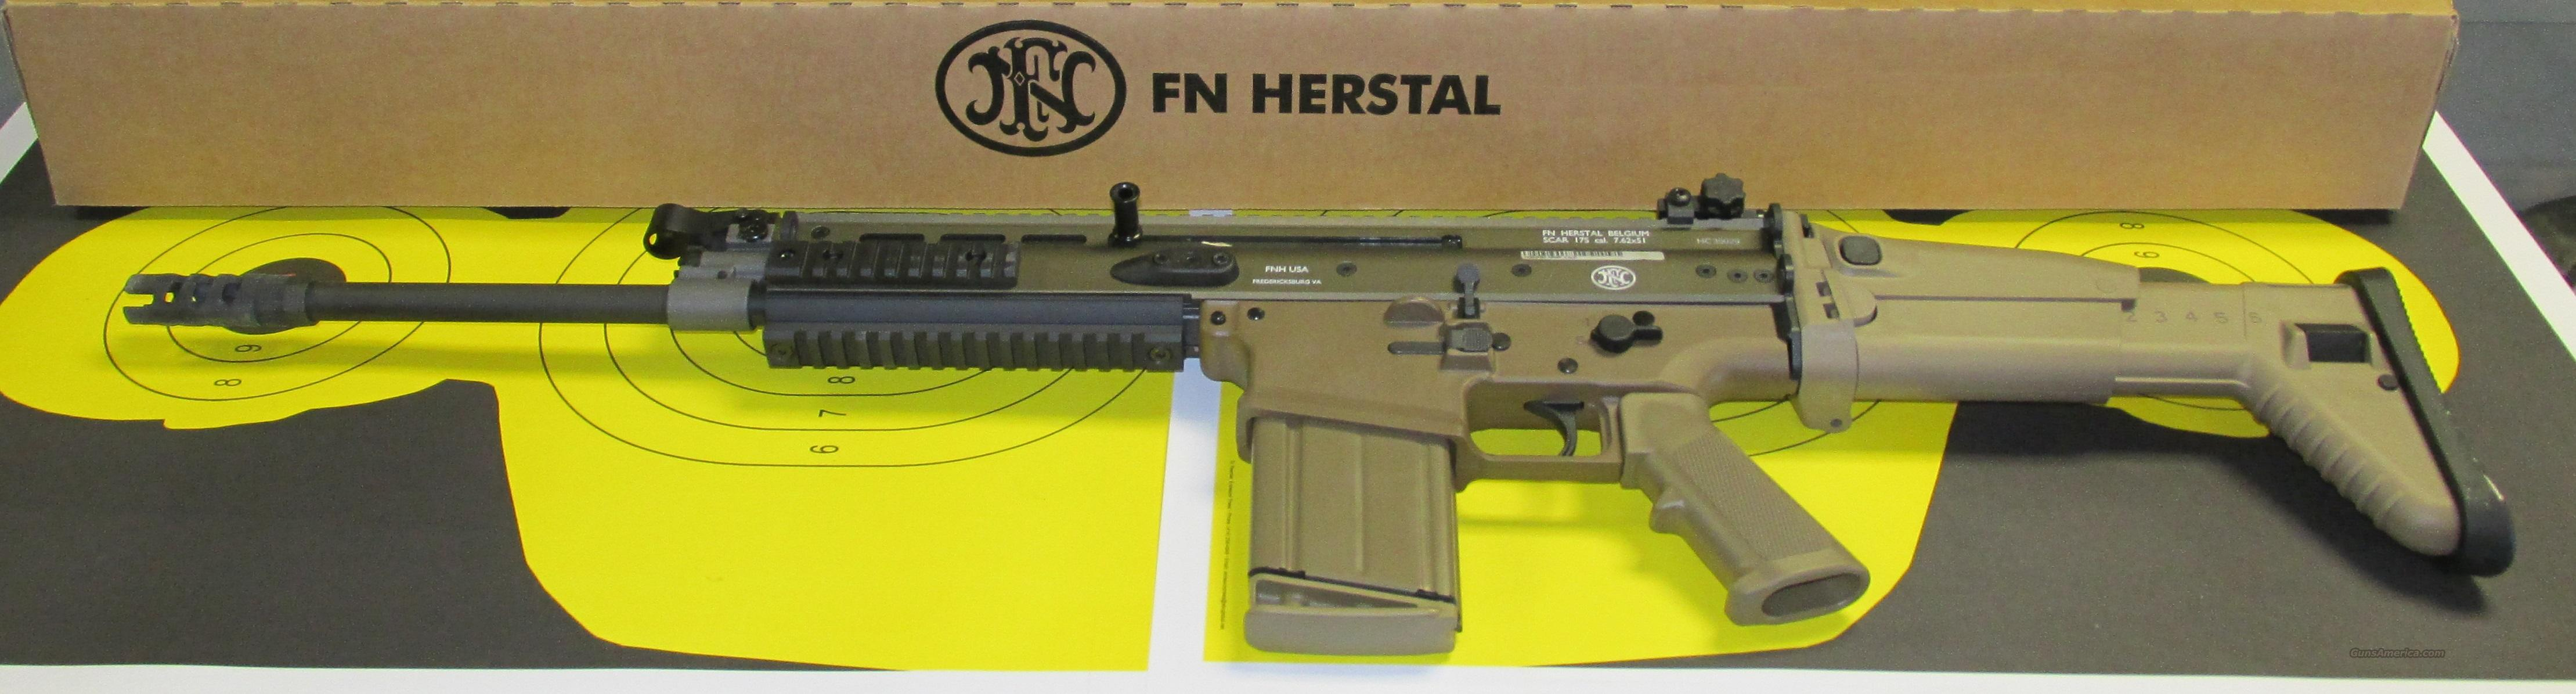 FNH FDE SCAR 17S Rifle   Guns > Rifles > FNH - Fabrique Nationale (FN) Rifles > Semi-auto > Other